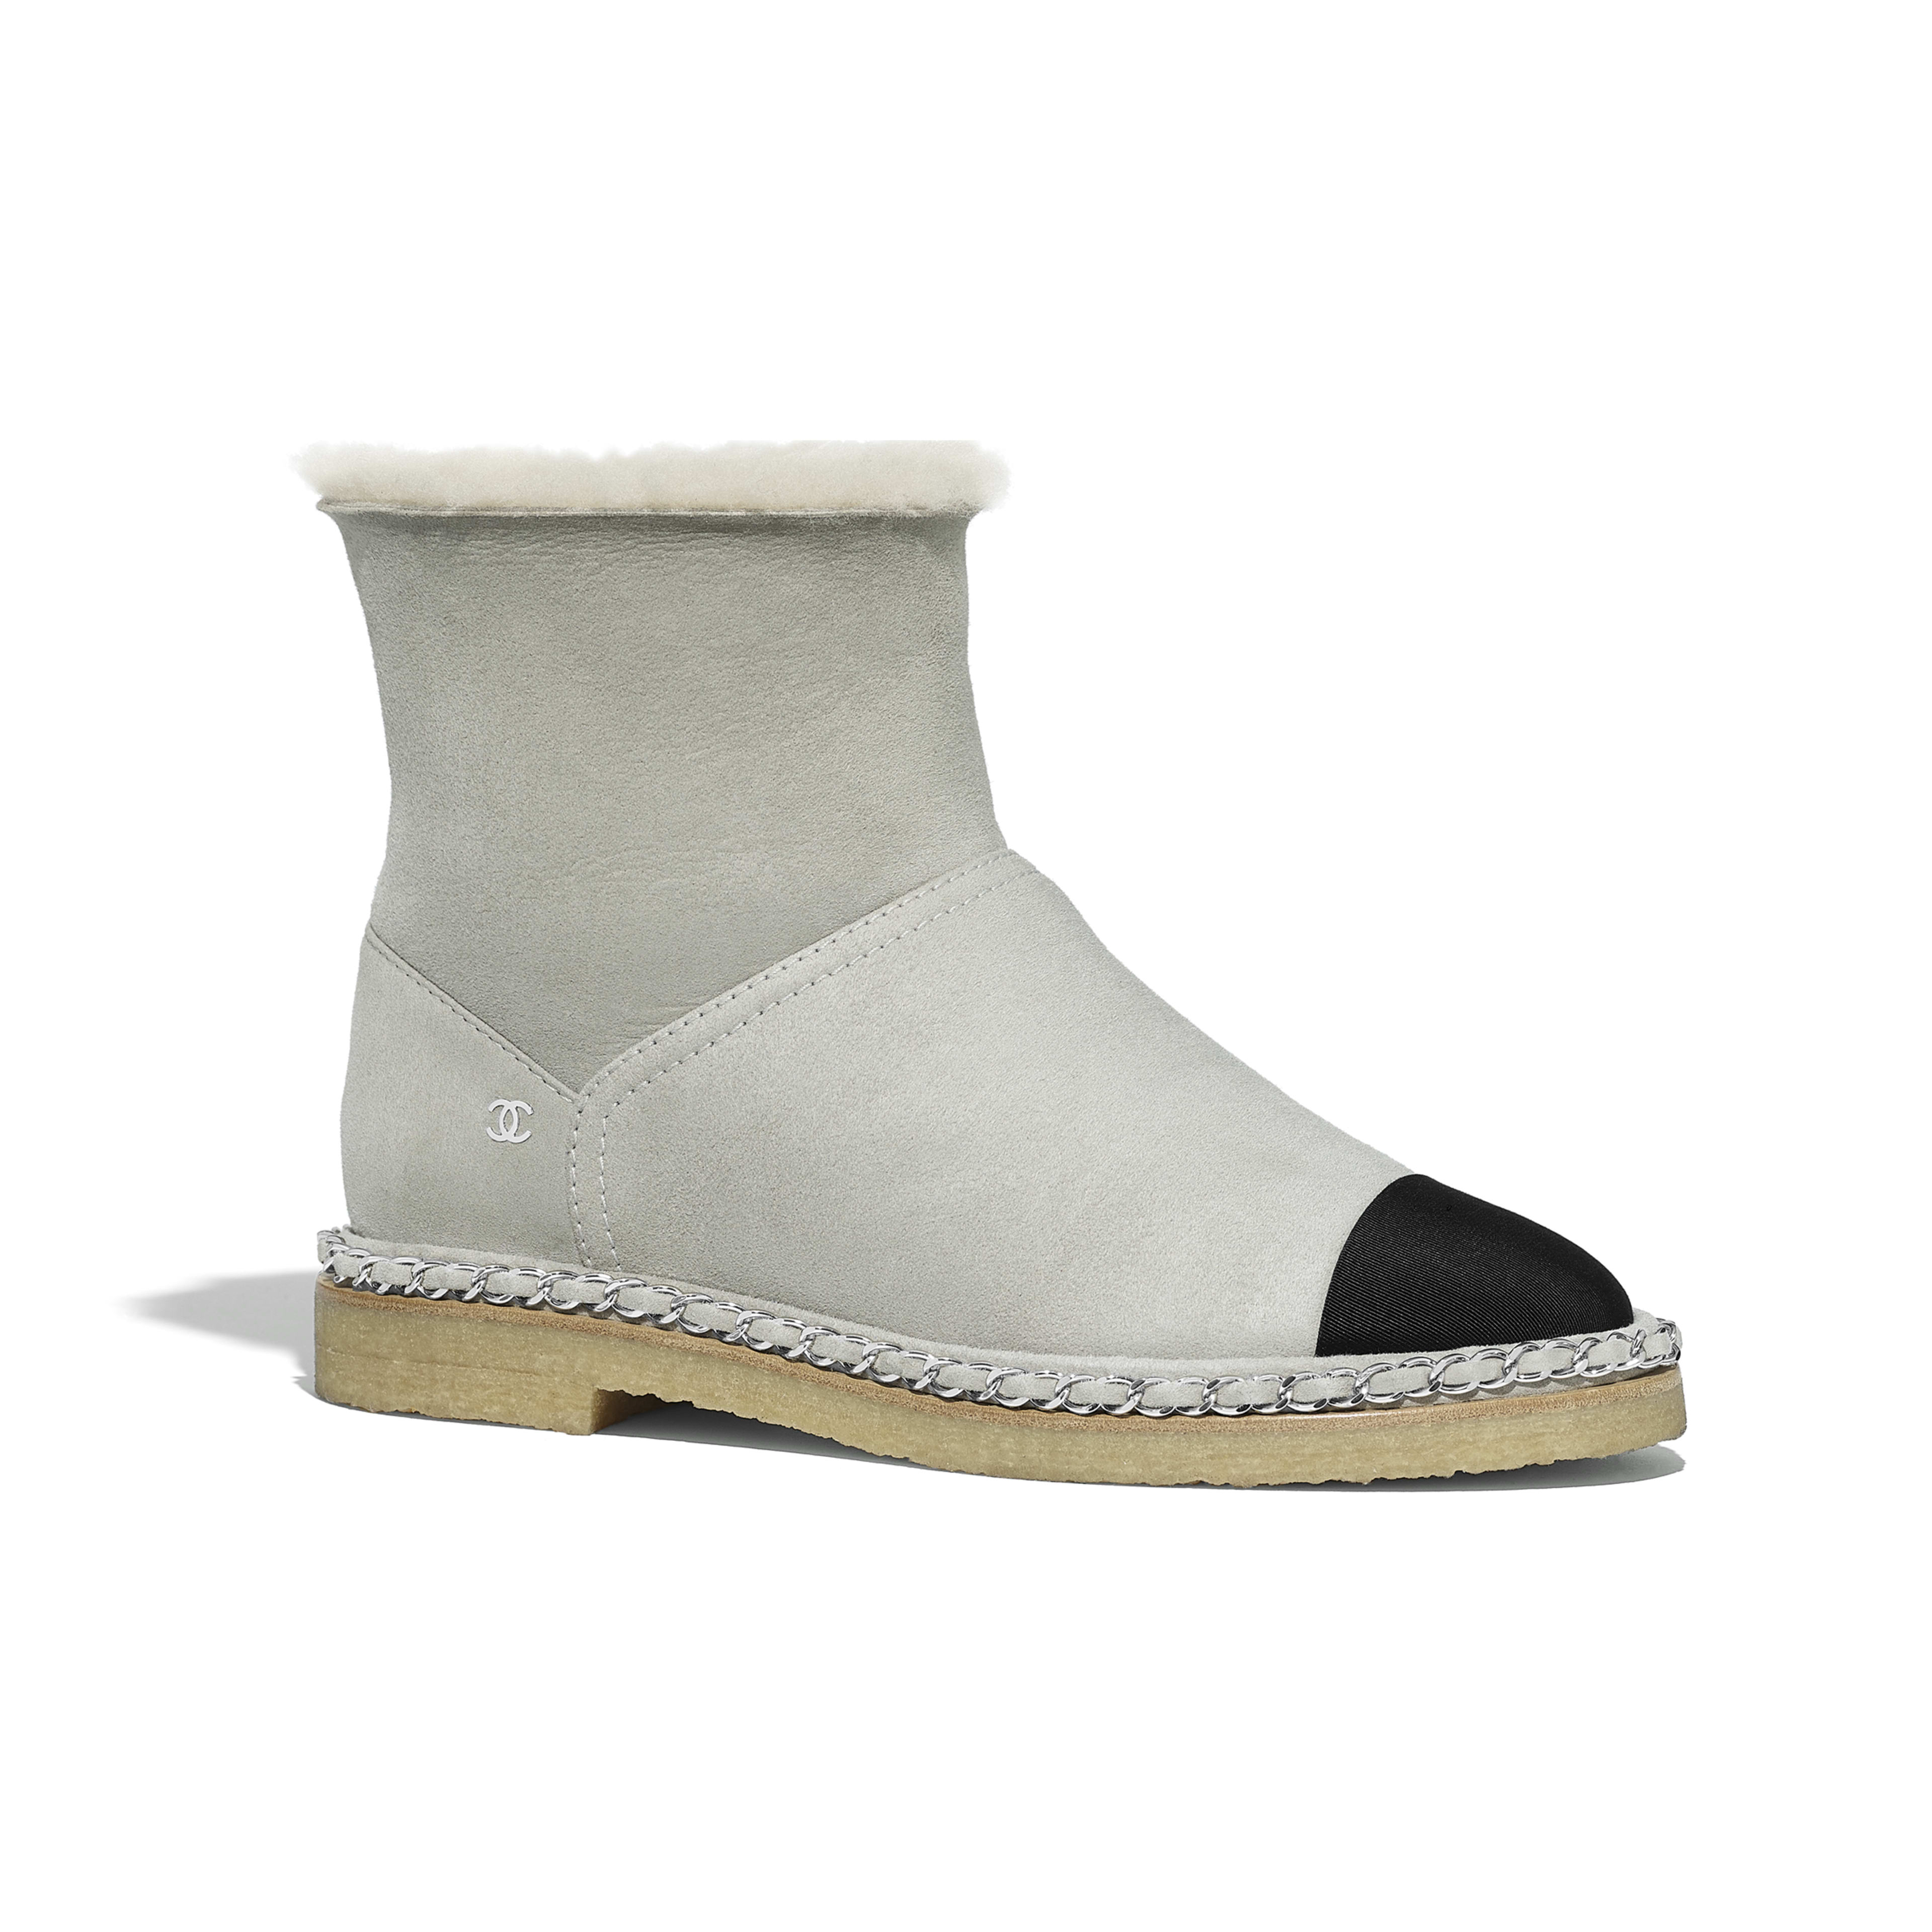 Ankle Boots - Gray & Black - Shearling Lambskin & Grosgrain - Default view - see full sized version